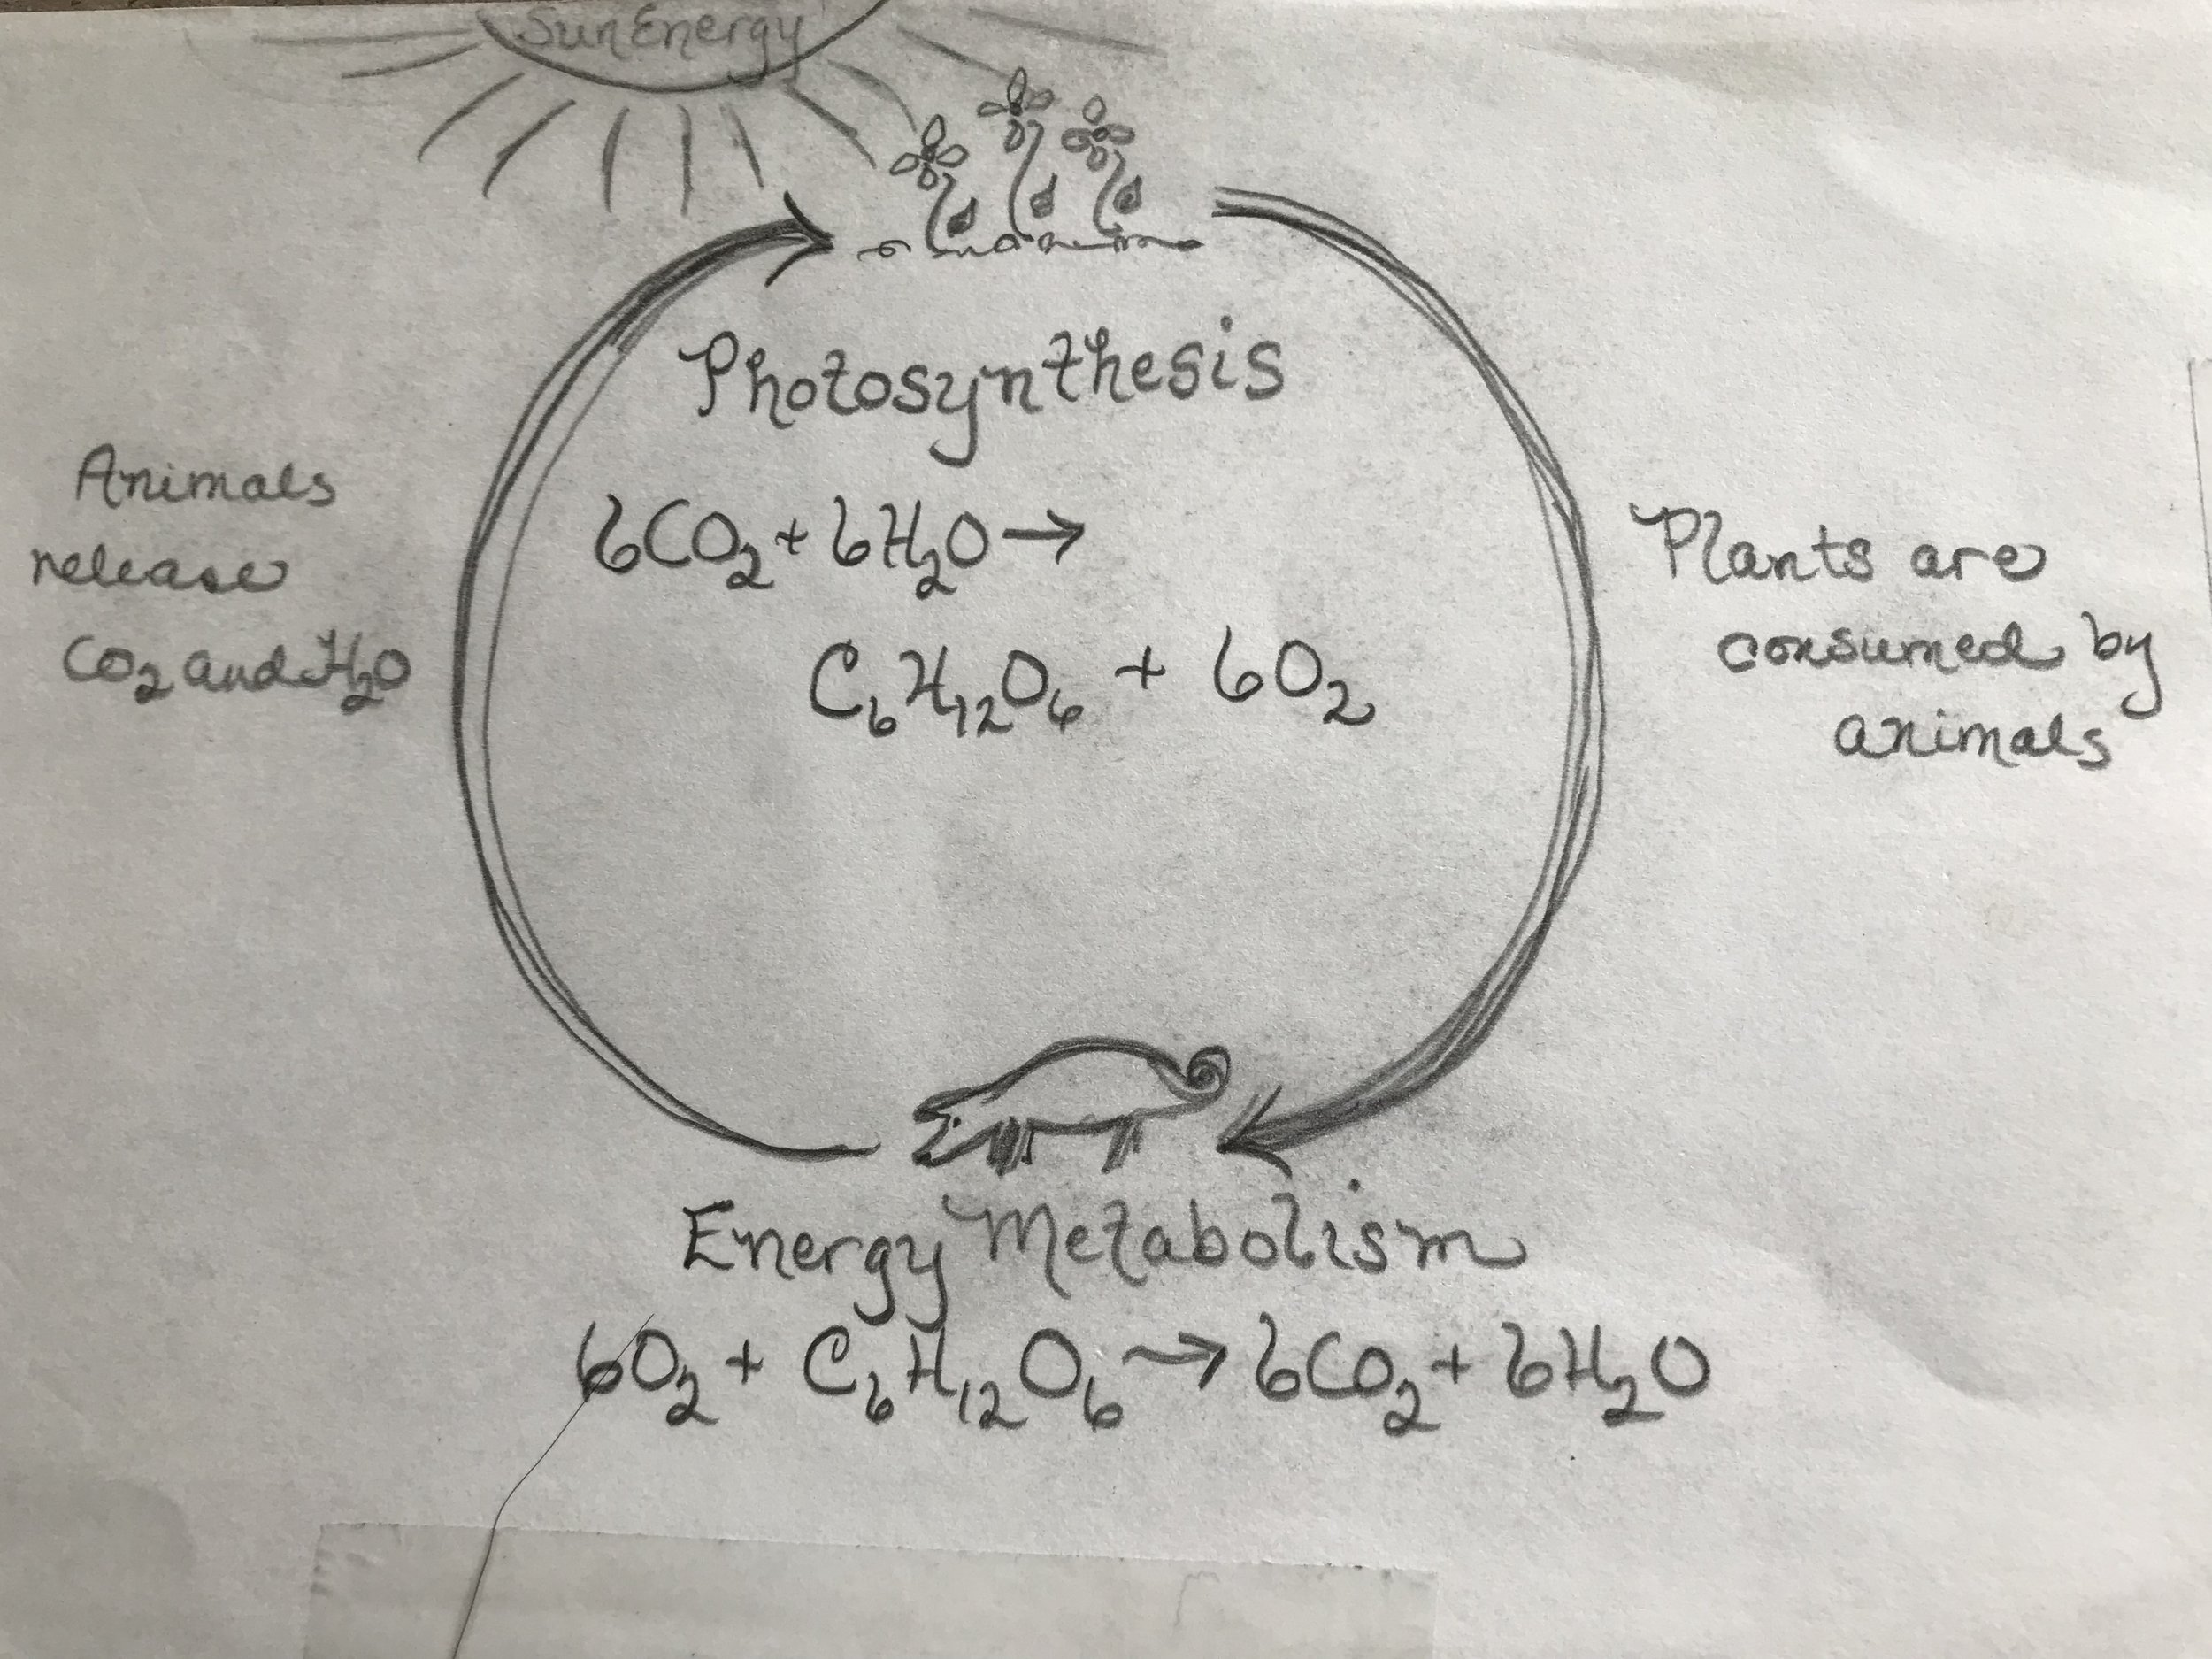 Dr. Hillary's Biochemistry Drawing on the Cycle of Life.